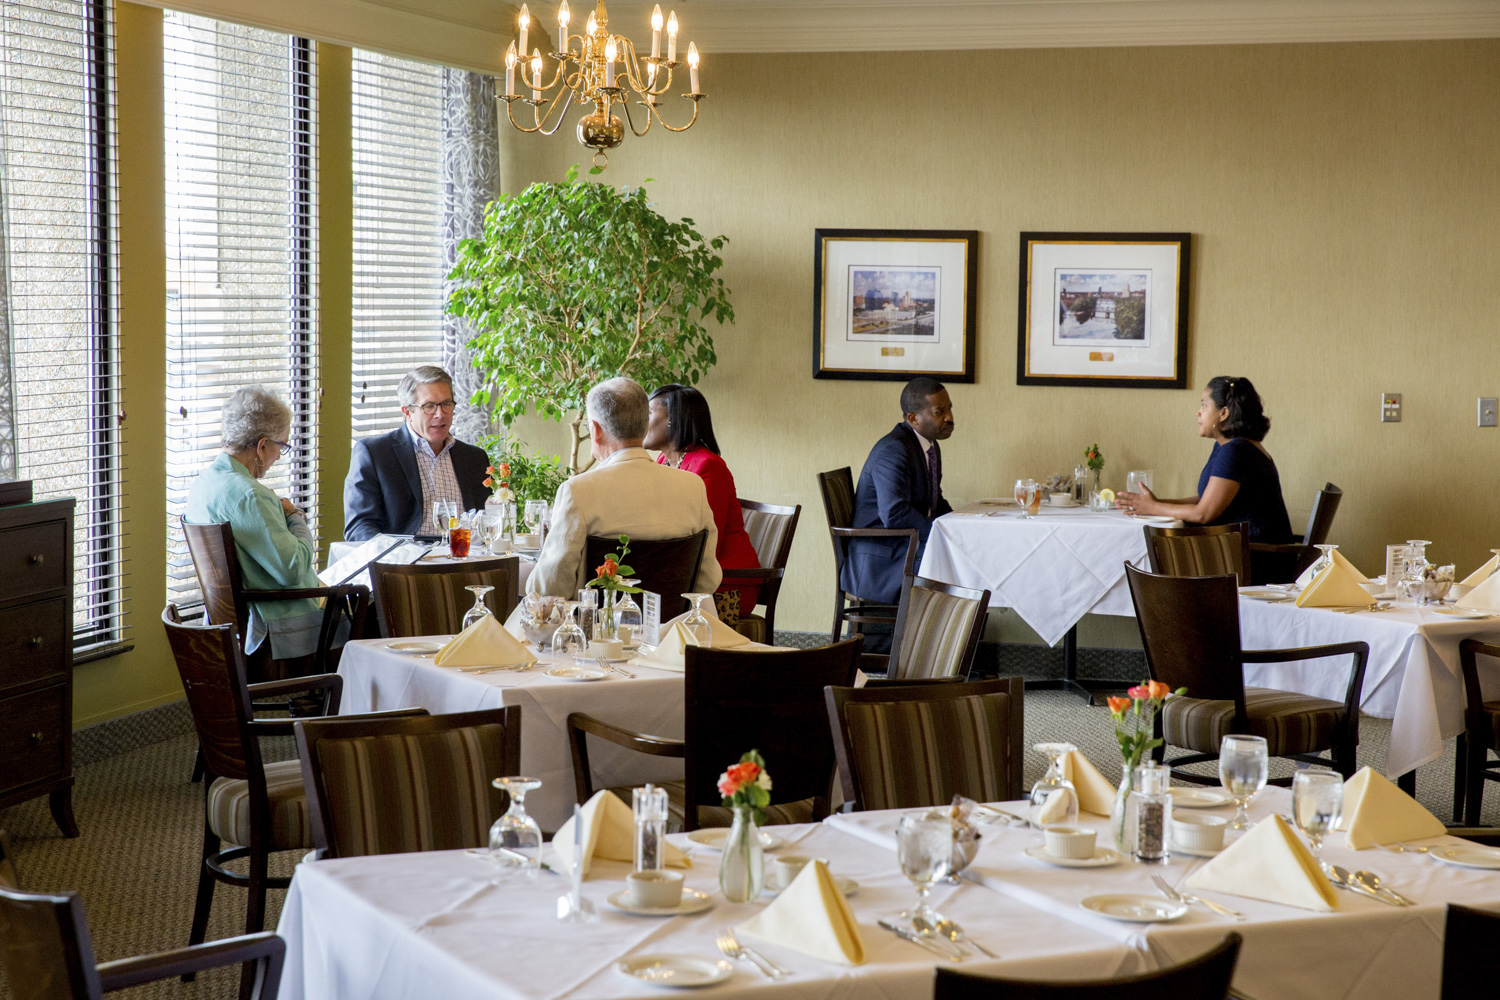 Dine At The University Club